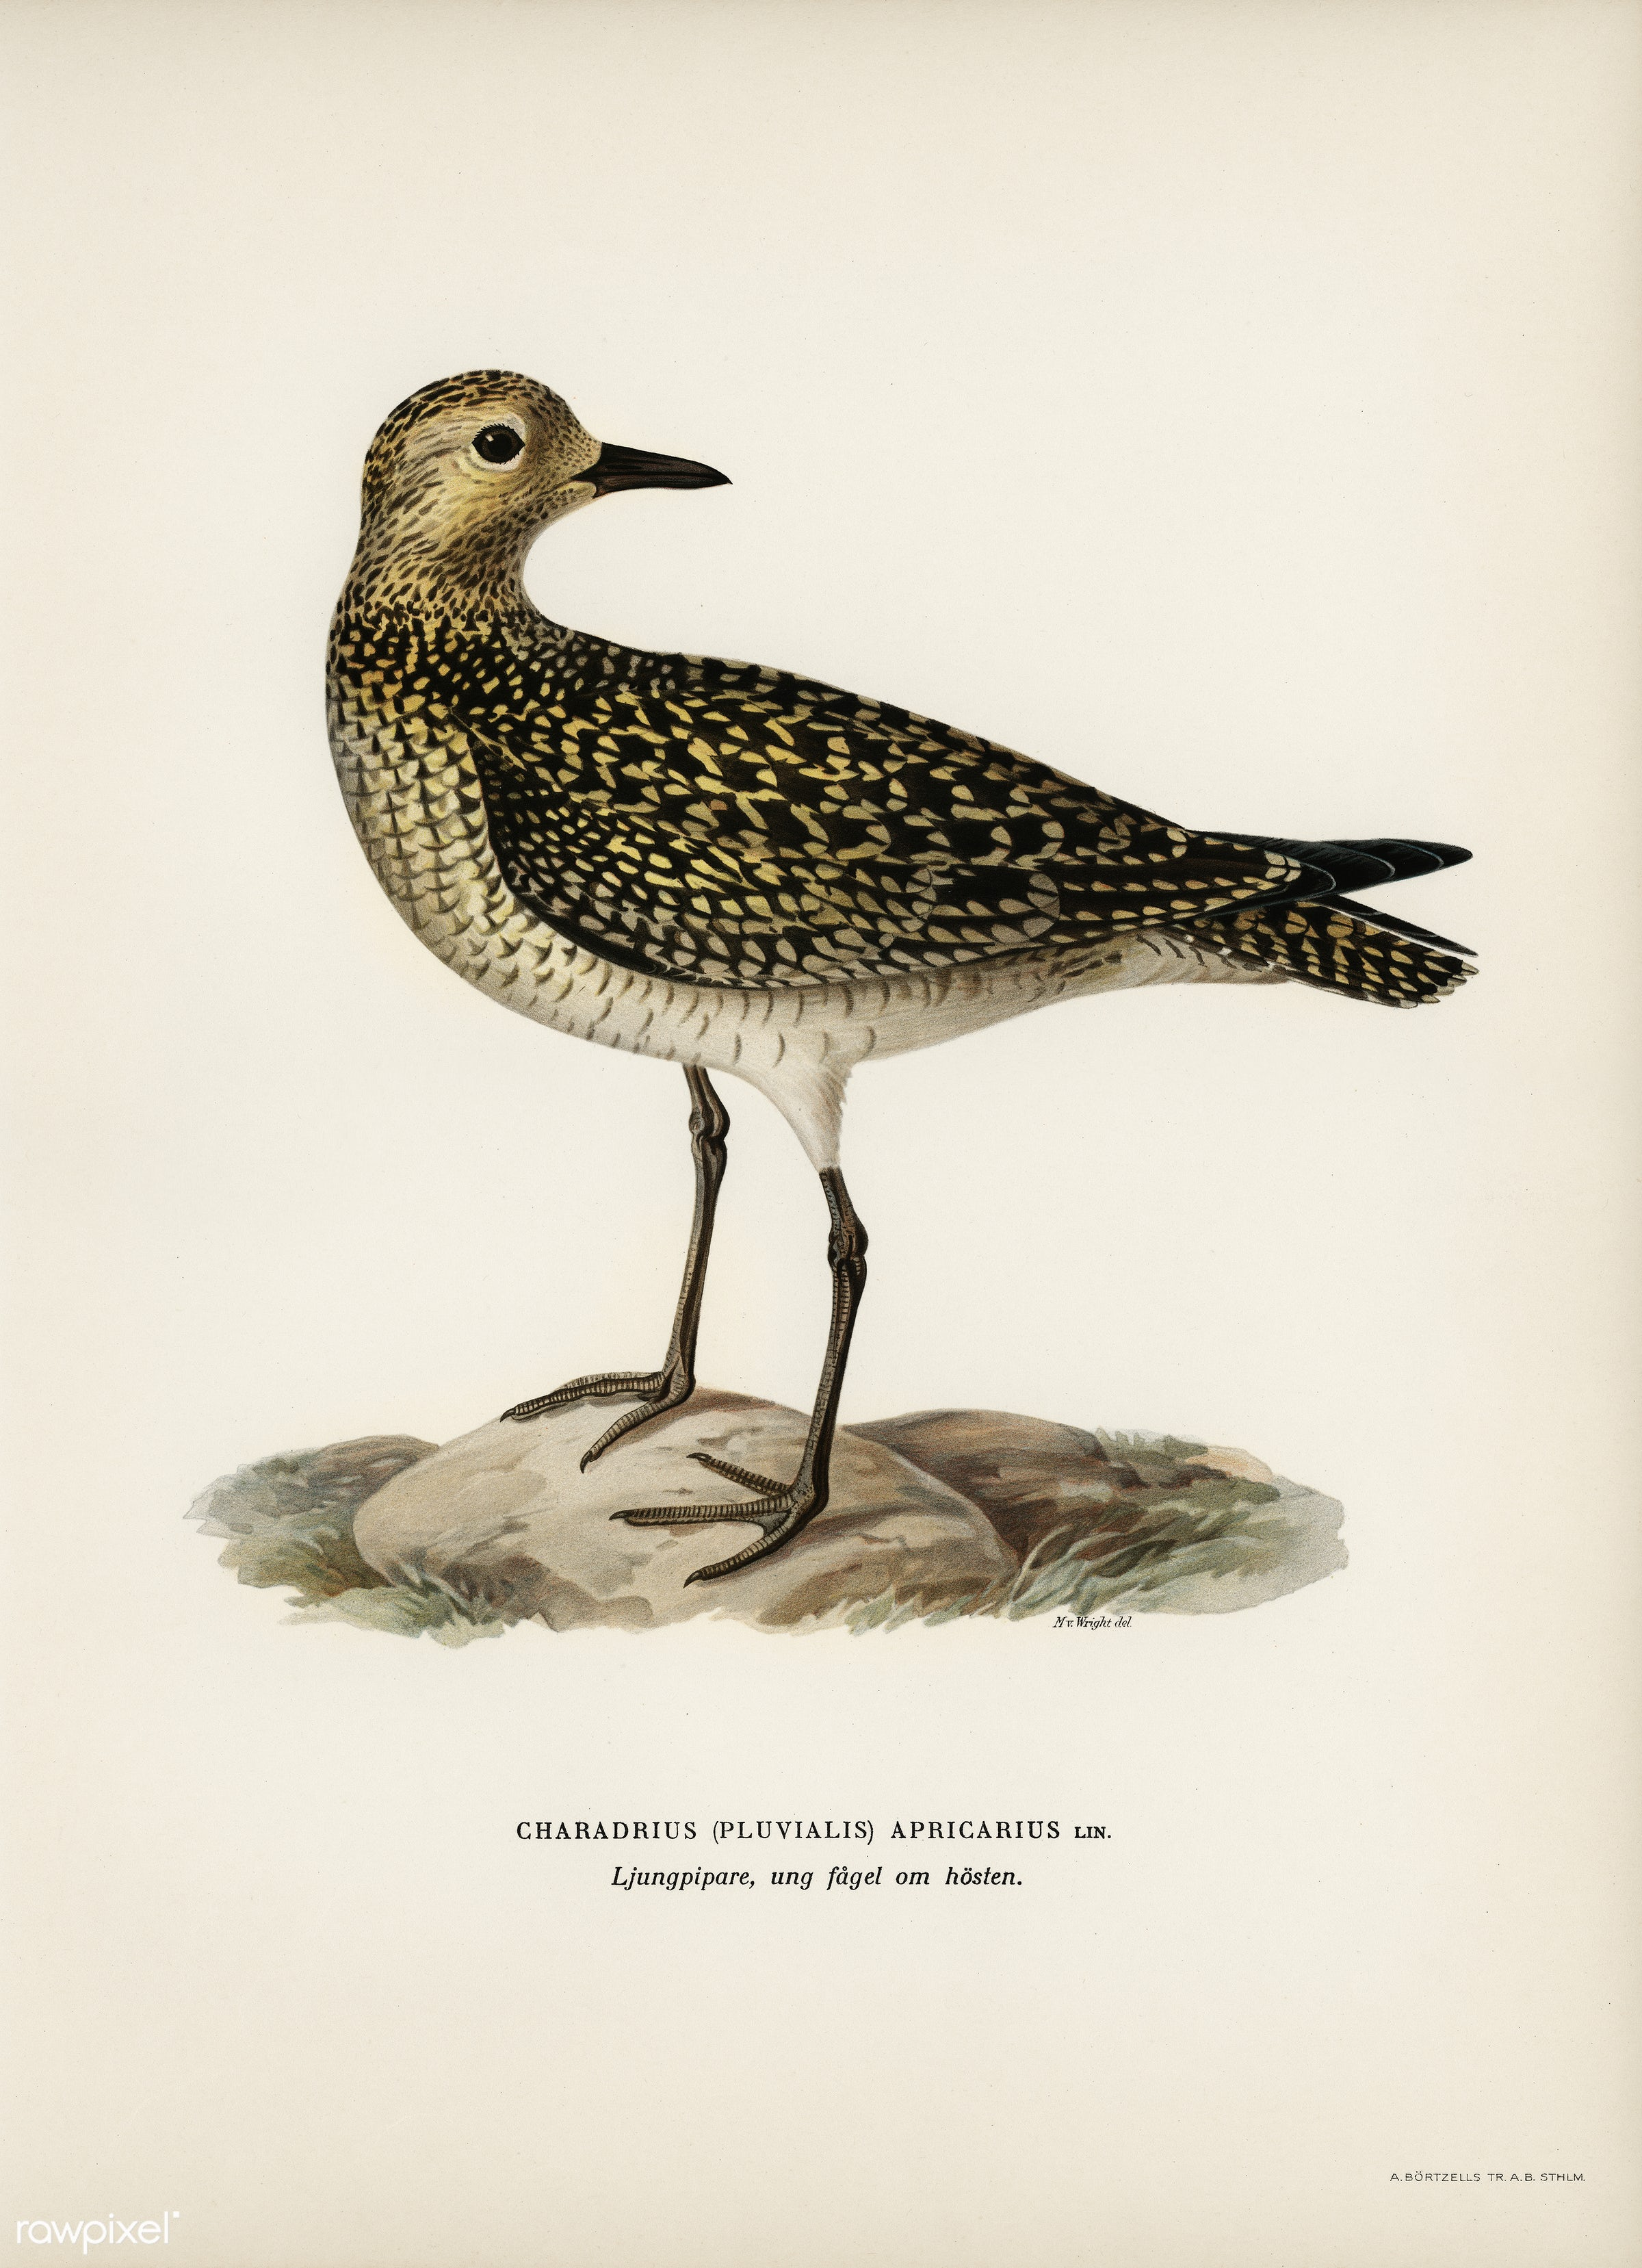 European Golden-Plover (charadrius pluvialis apricarius) illustrated by the von Wright brothers. Digitally enhanced from our...